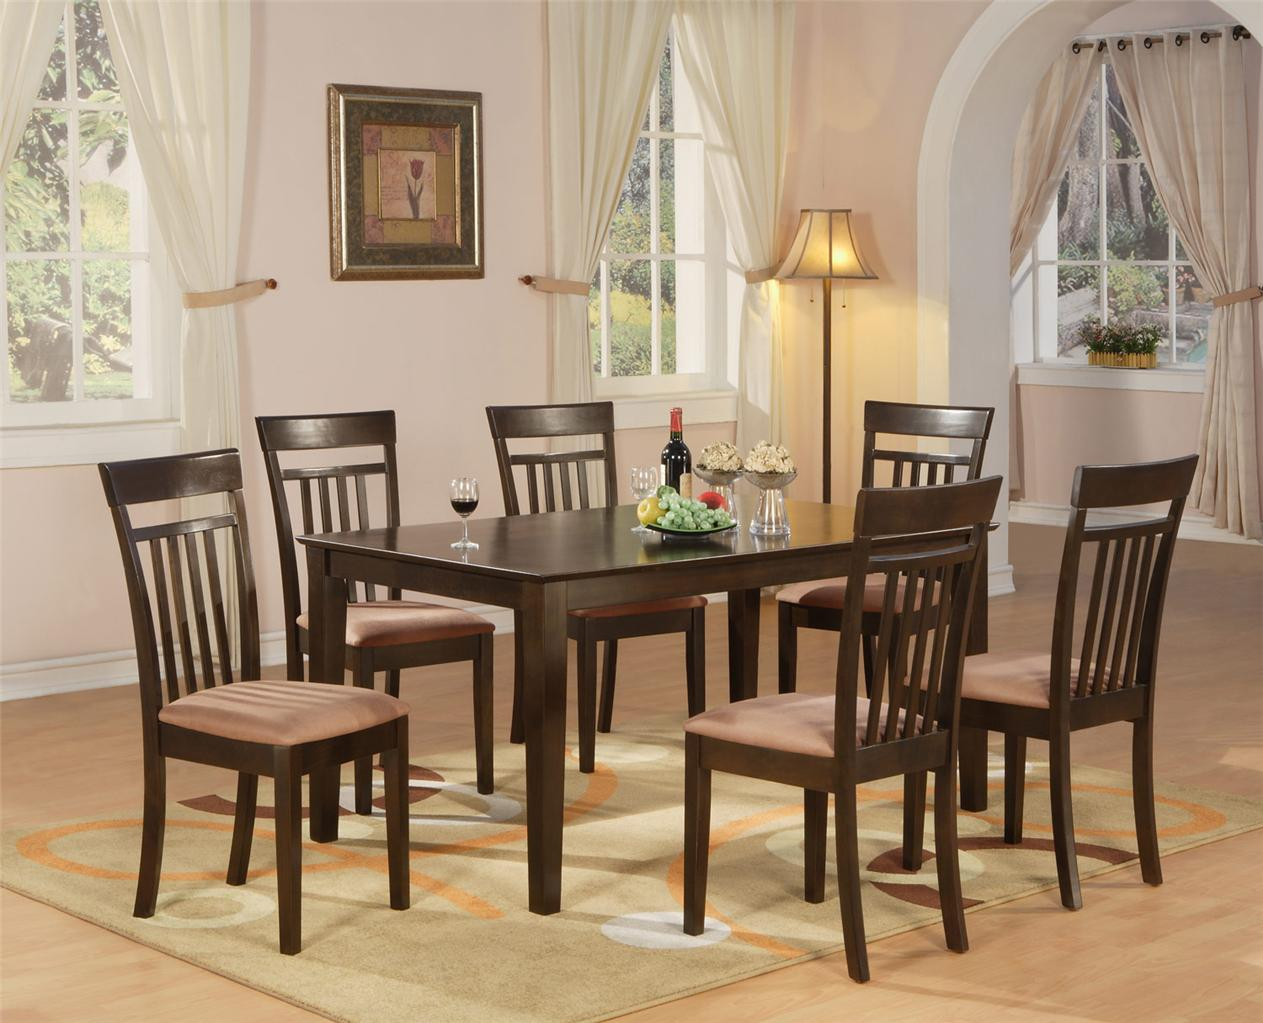 Kitchen dinette sets Photo - 1